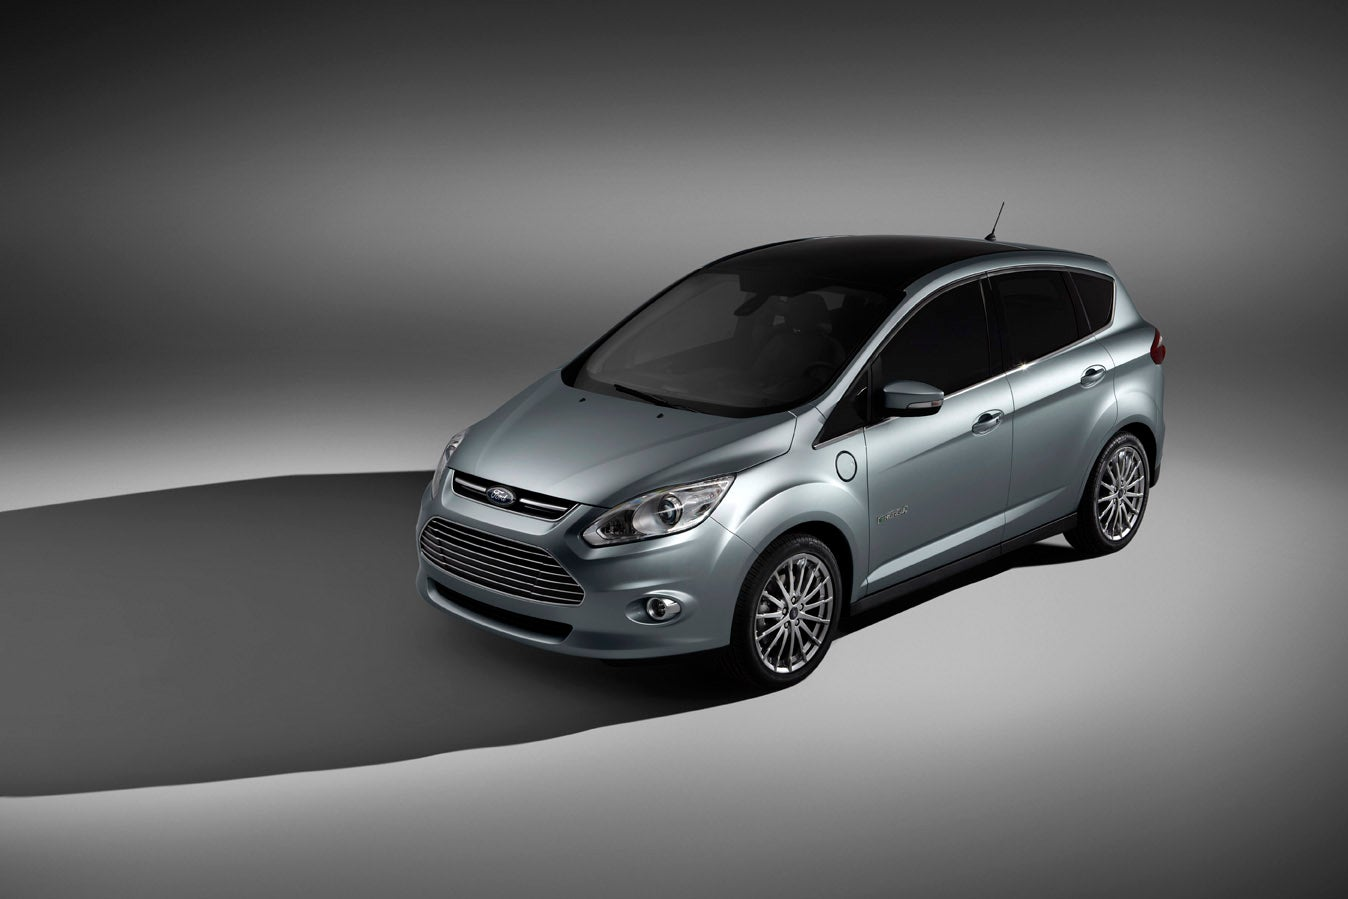 Detroit Auto Show: Ford Unveils The C-MAX Energi, Its First Plug-In Hybrid